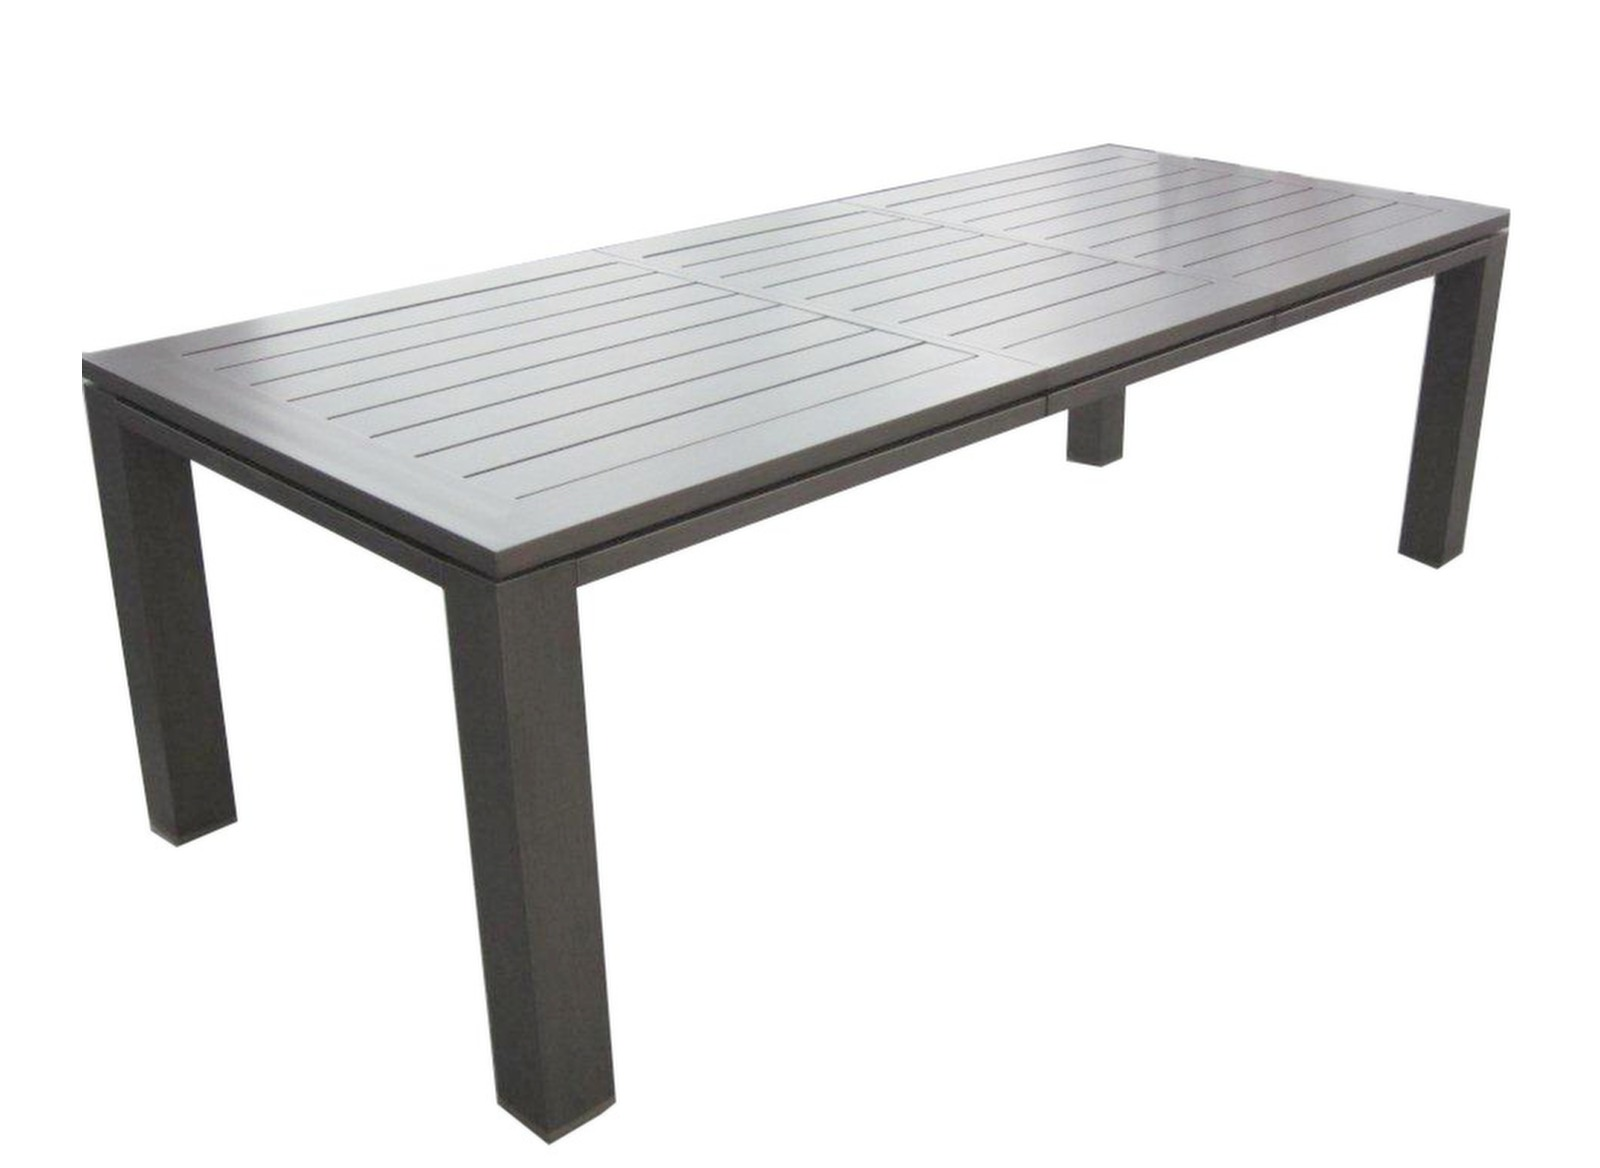 Table de jardin aluminium 180 240cm latino gamme aliz for Table exterieur en aluminium